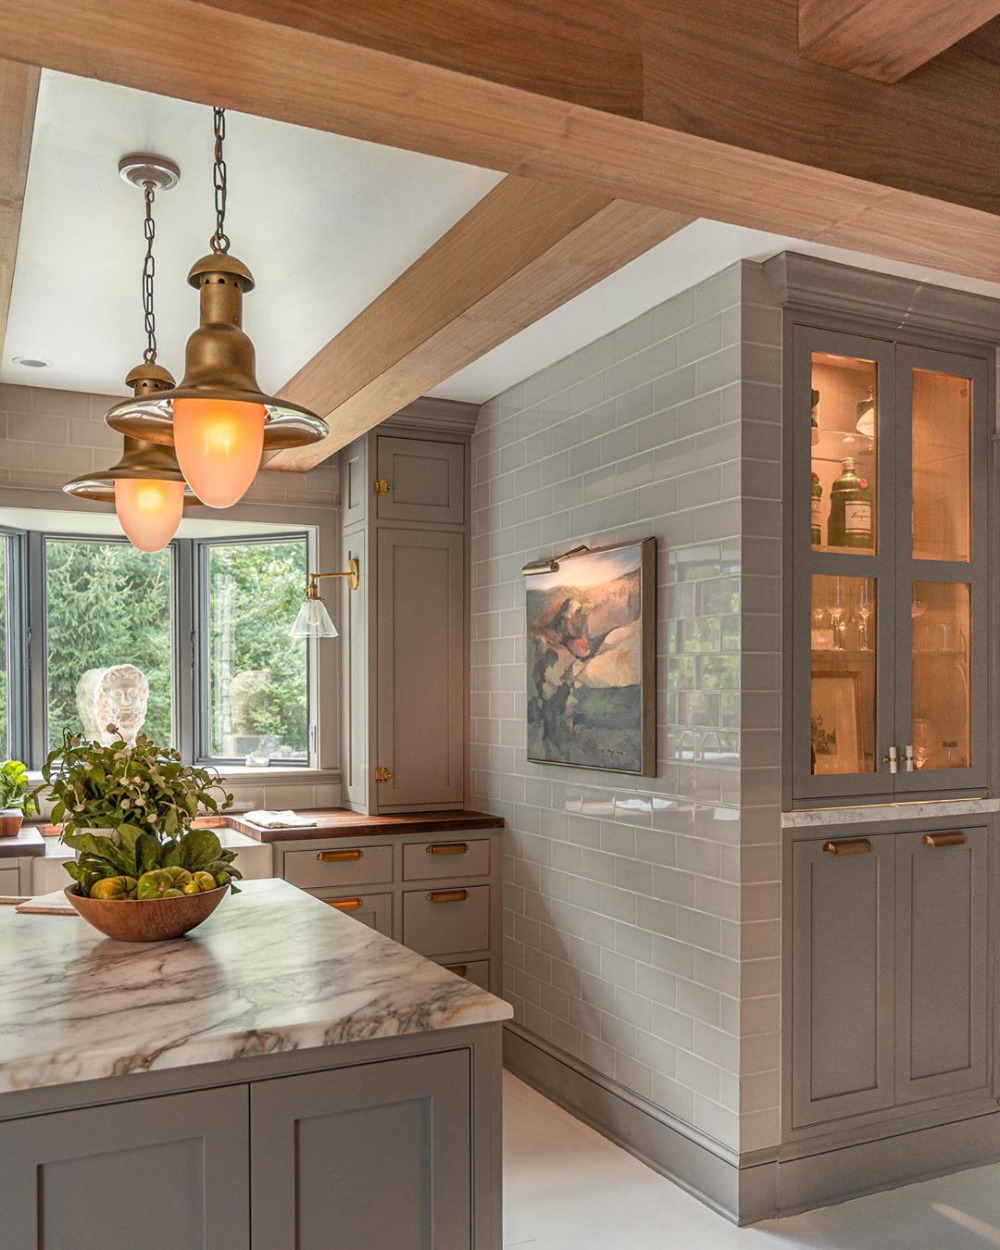 Pin On Painted Kitchens